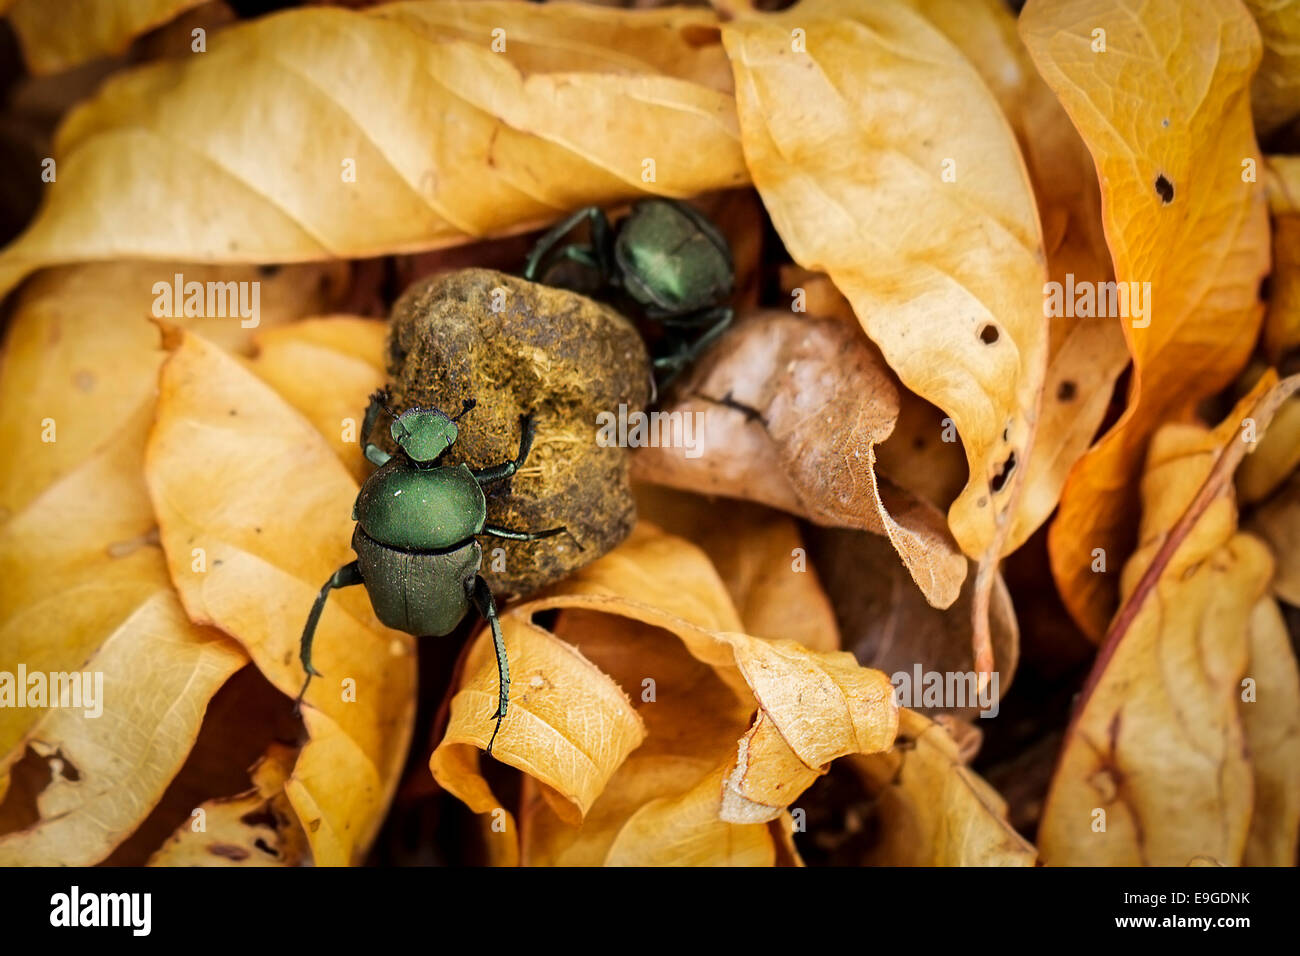 Male and female African dung beetles rolling dung together through gold coloured leaf litter, Zambia - Stock Image